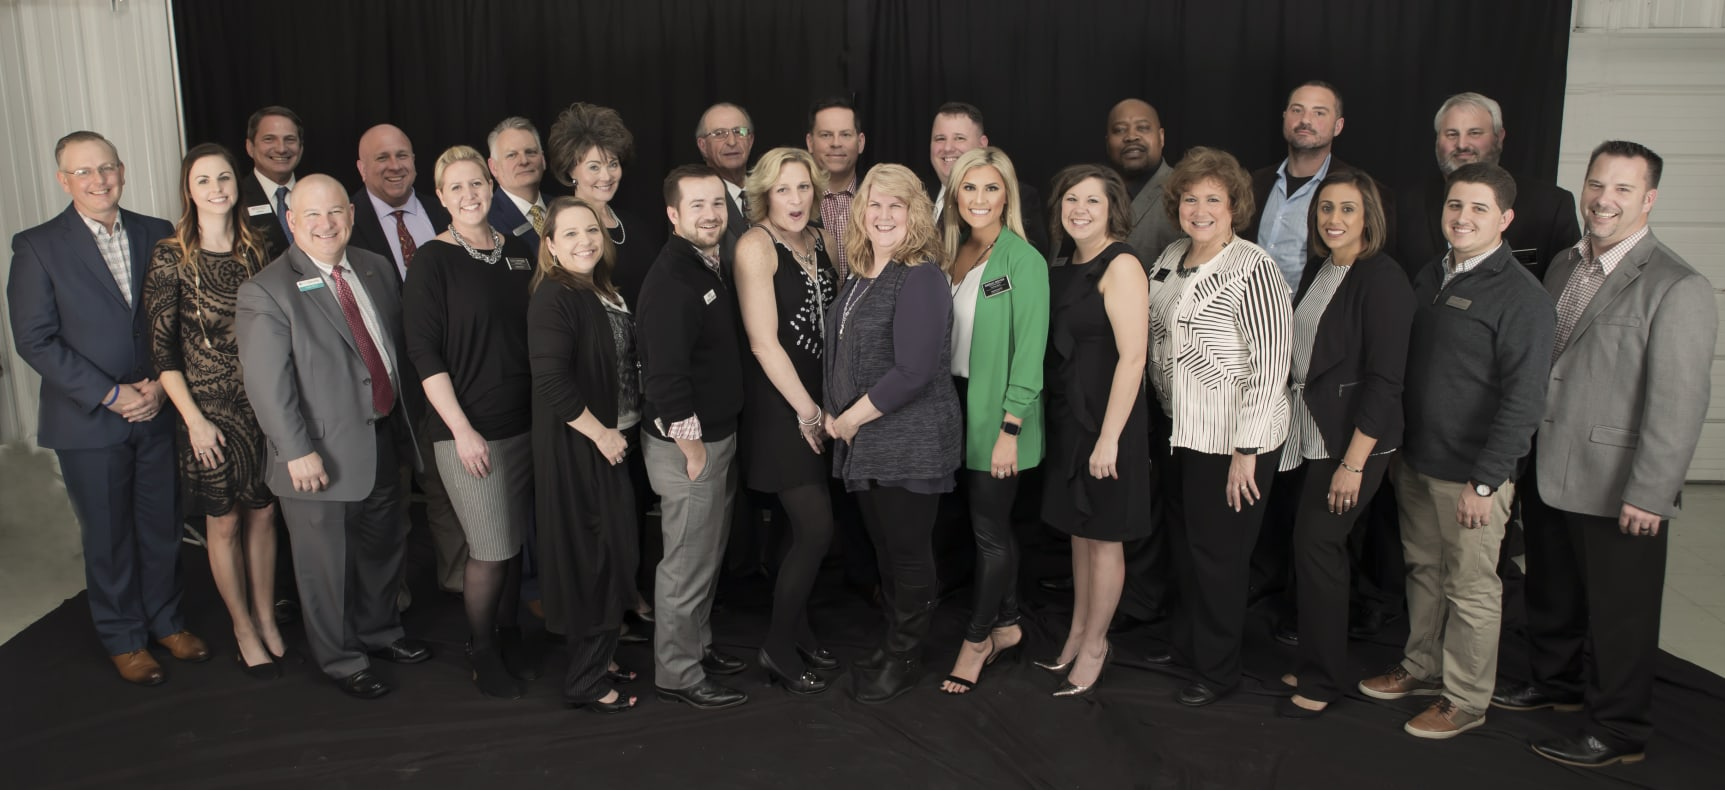 2018 Sherwood Chamber of Commerce Officers and Executive Committee